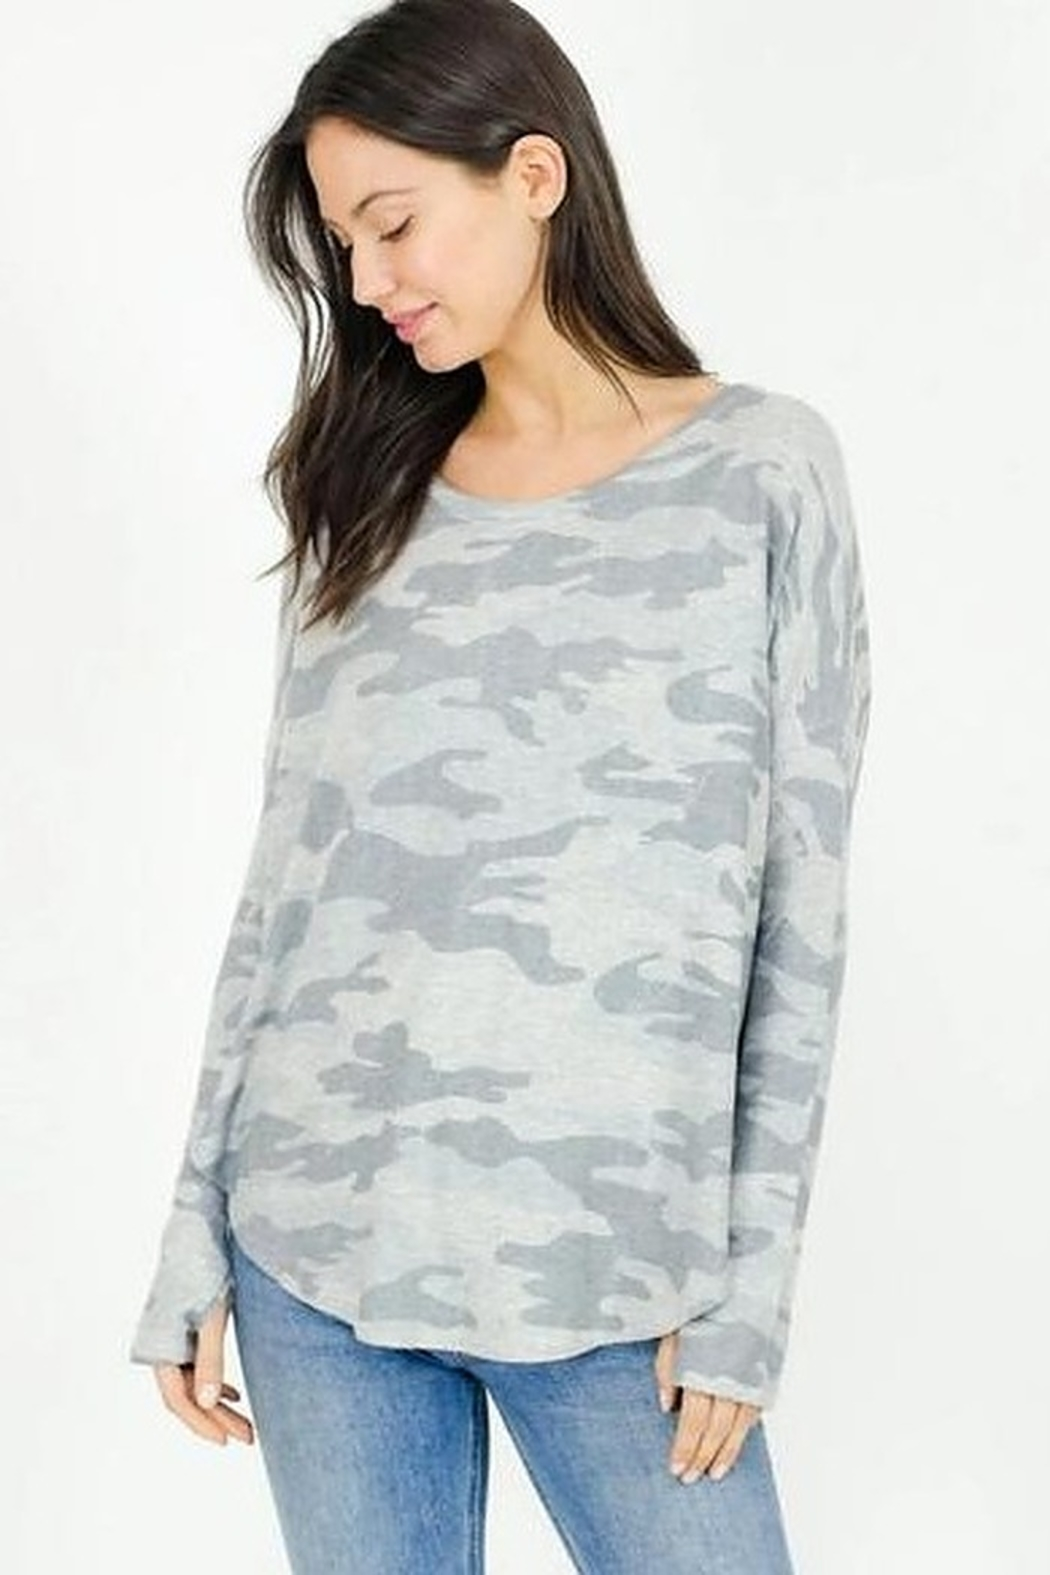 Six Fifty Light Camo Thumbhole Top - Main Image